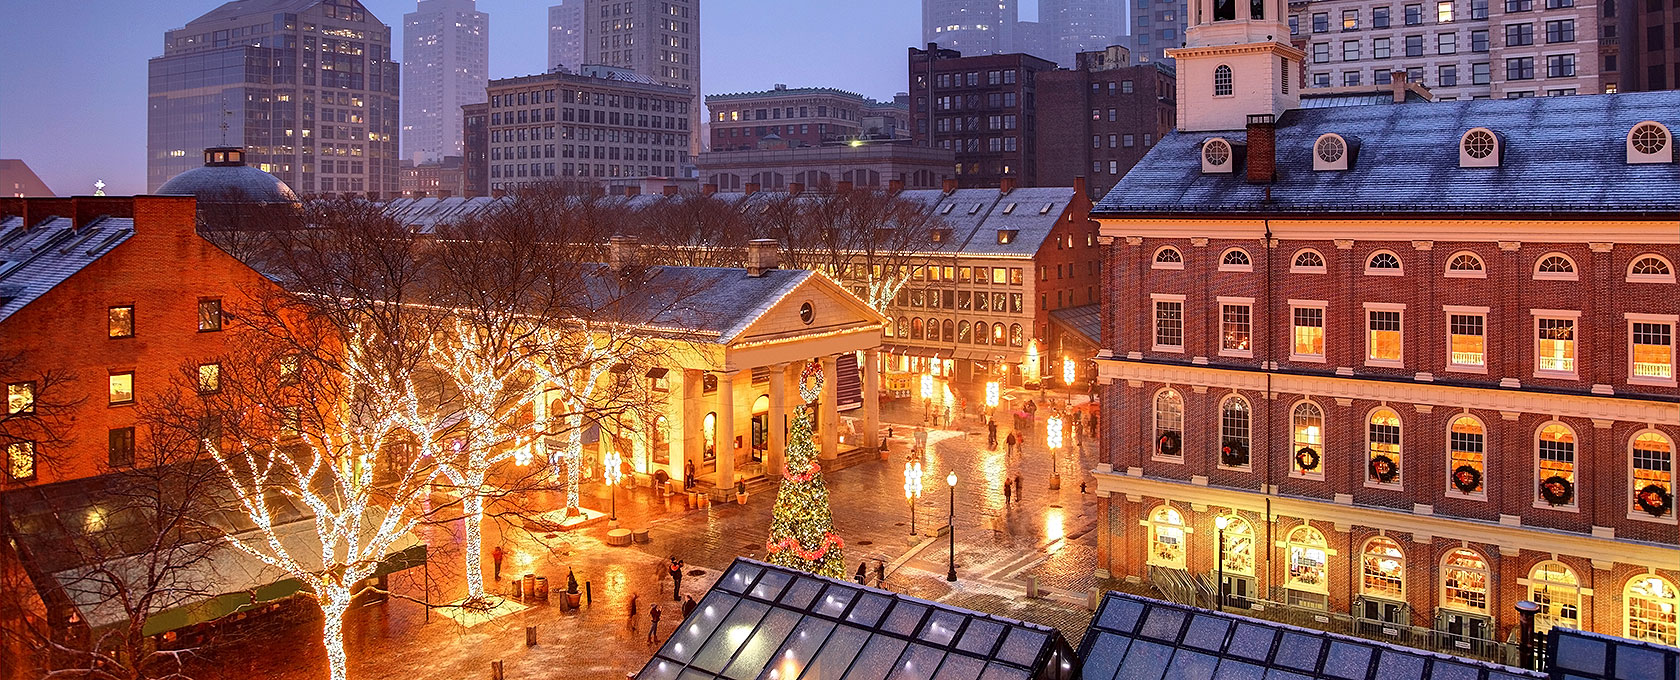 Nighttime picture of Faneuil Hall in Boston during Christmas with various trees decorated in holiday lights